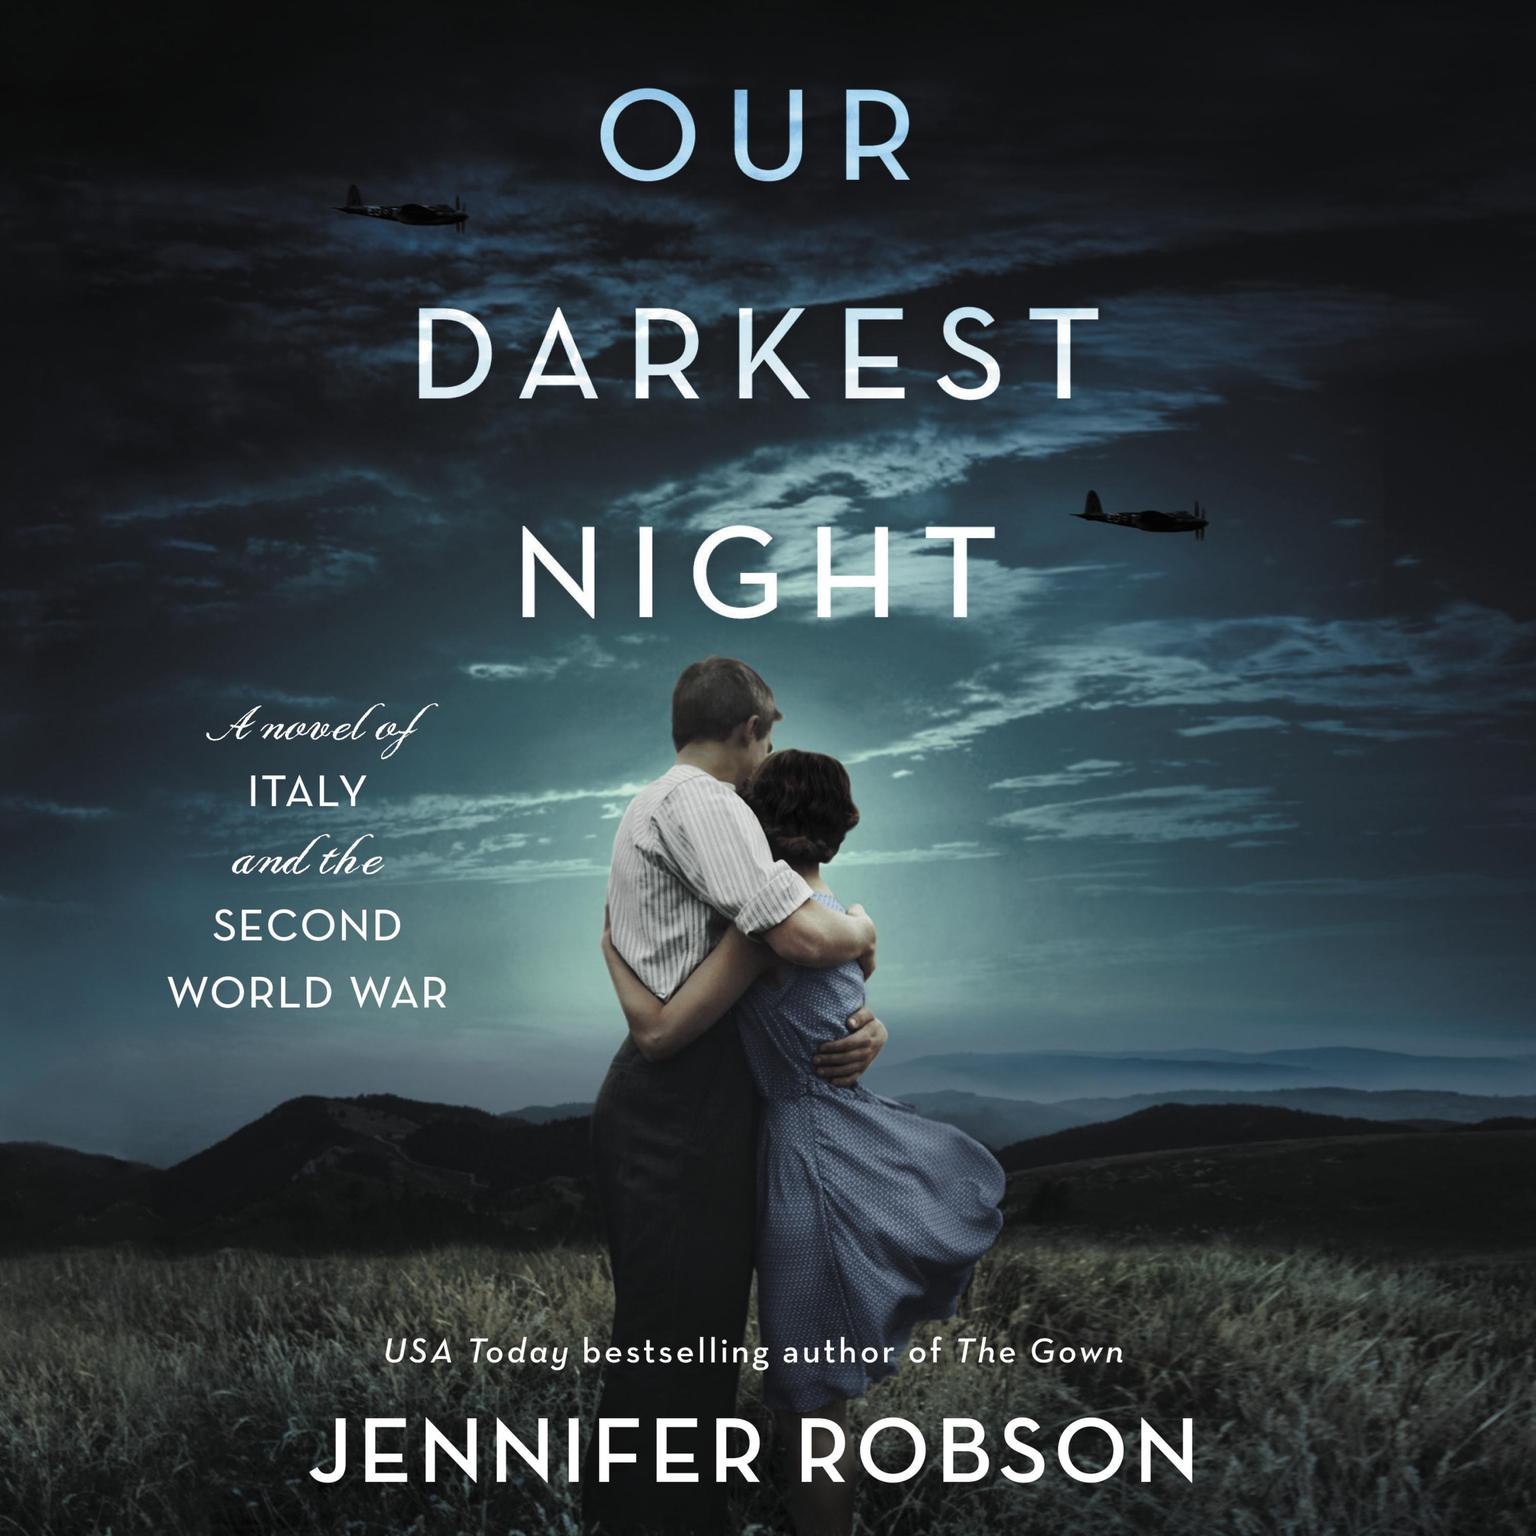 Our Darkest Night: A Novel of Italy and the Second World War Audiobook, by Jennifer Robson